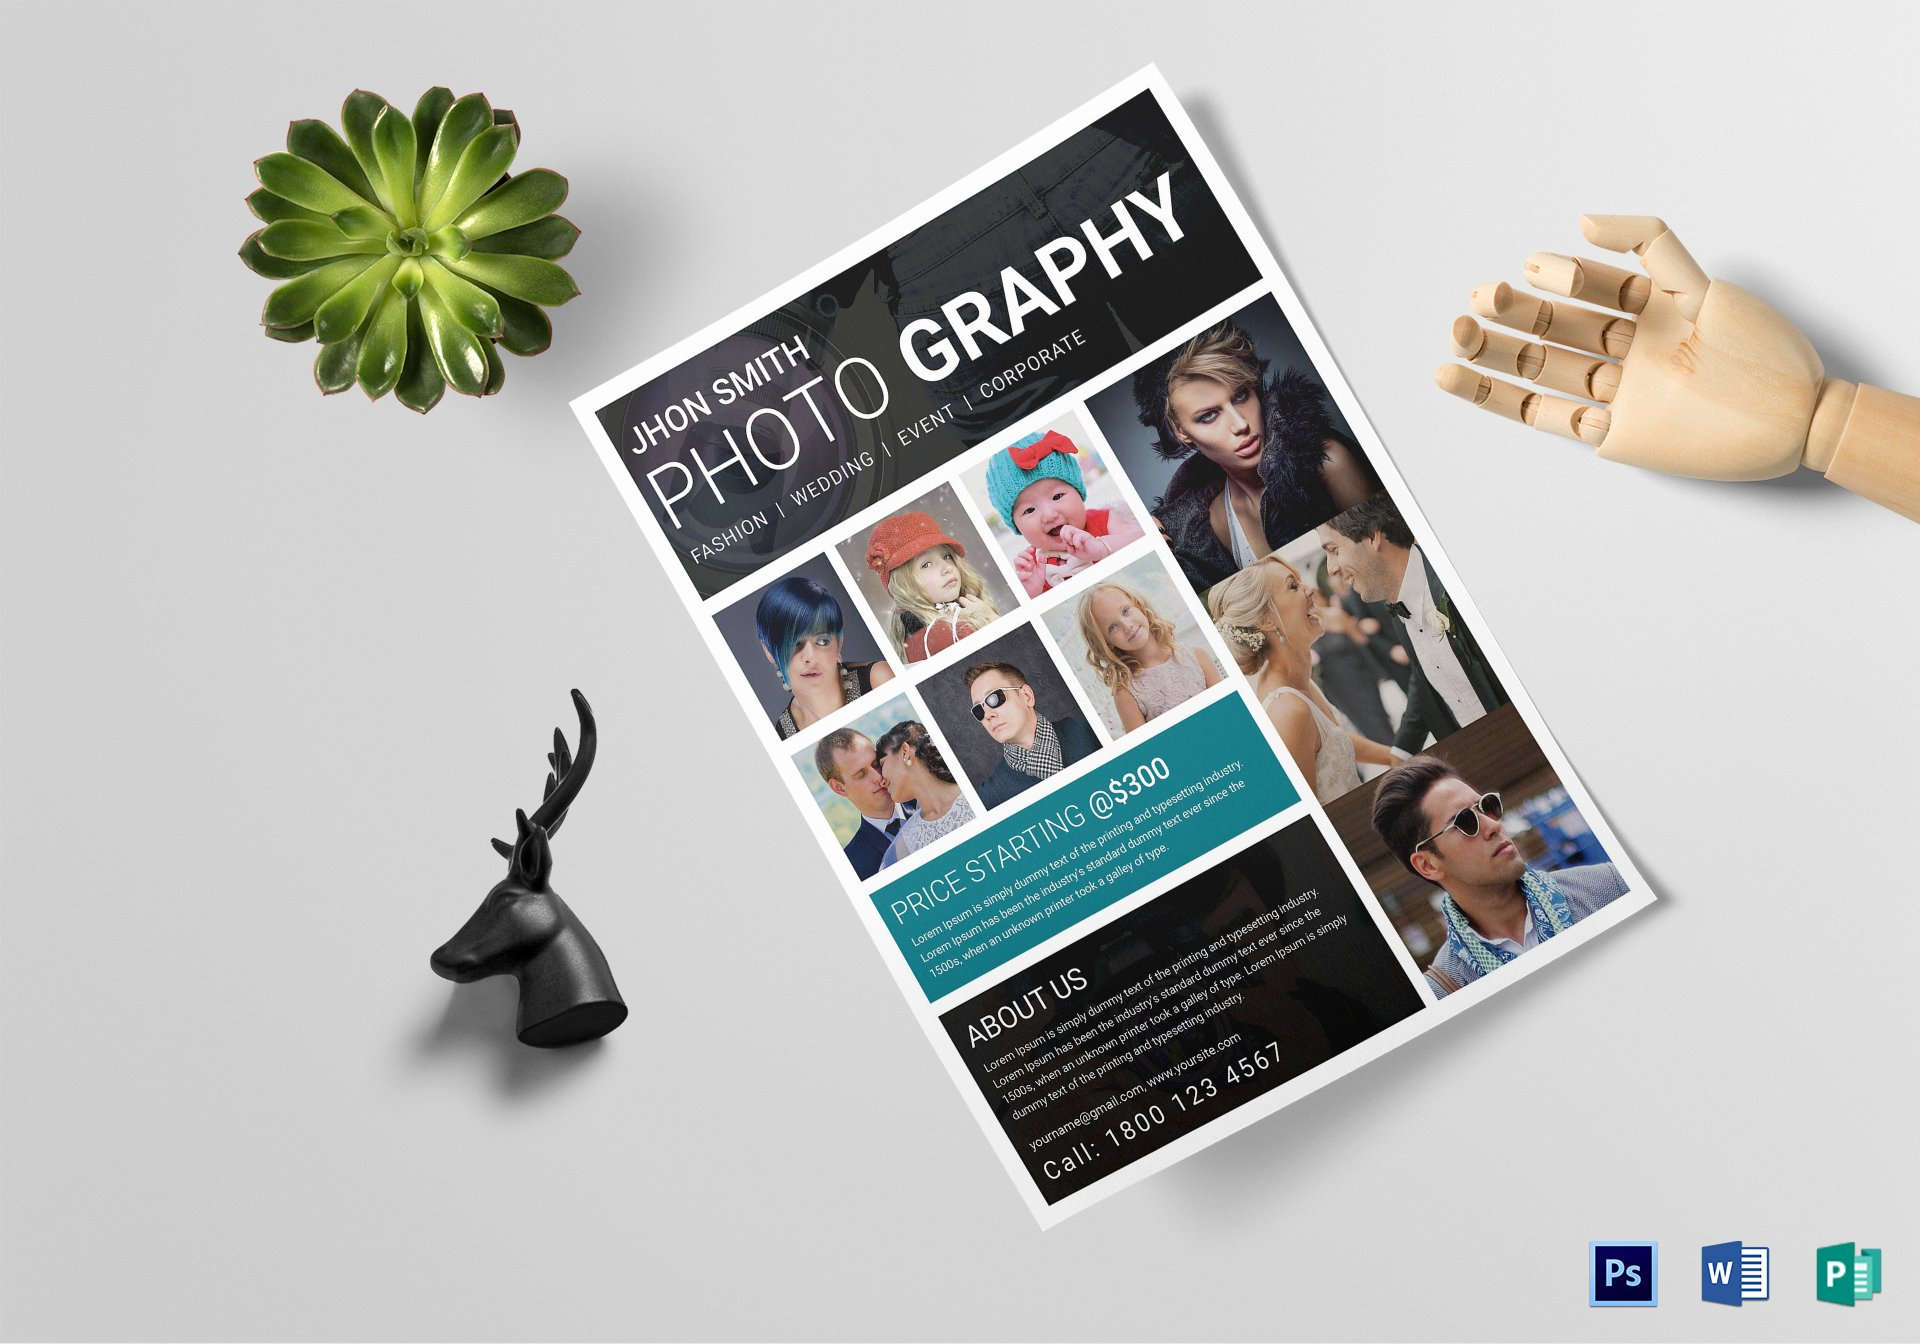 Free Photography Flyer Templates Inspirational Modern Graphy Flyer Design Template In Word Psd Publisher